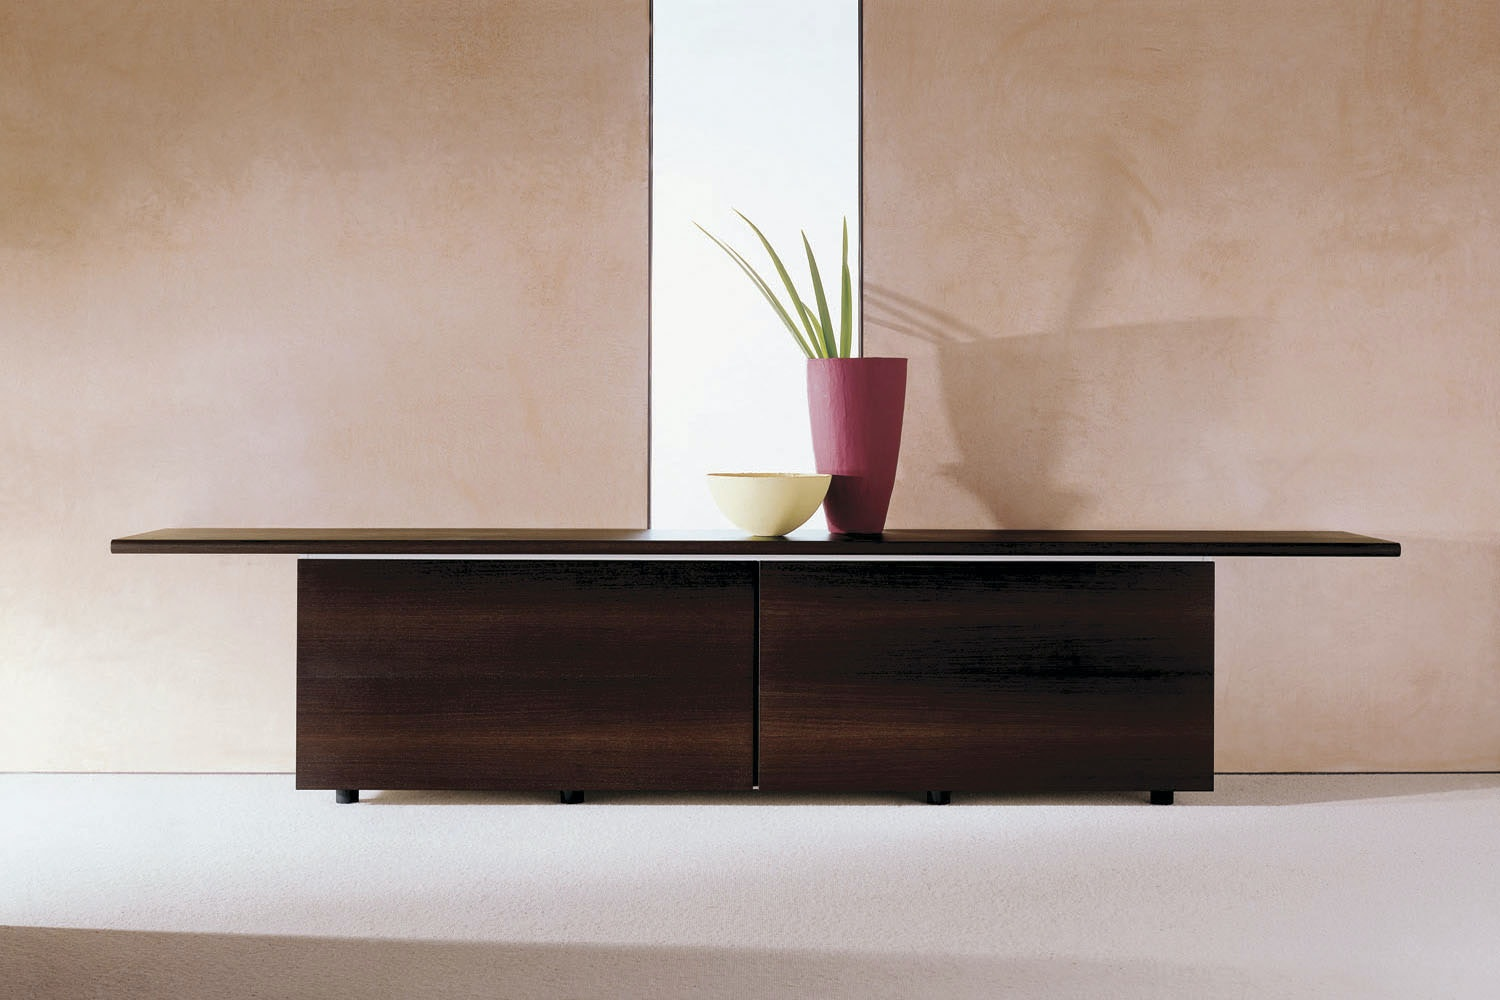 Sheraton Sideboard by Lodovico Acerbis, Giotto Stoppino for Acerbis